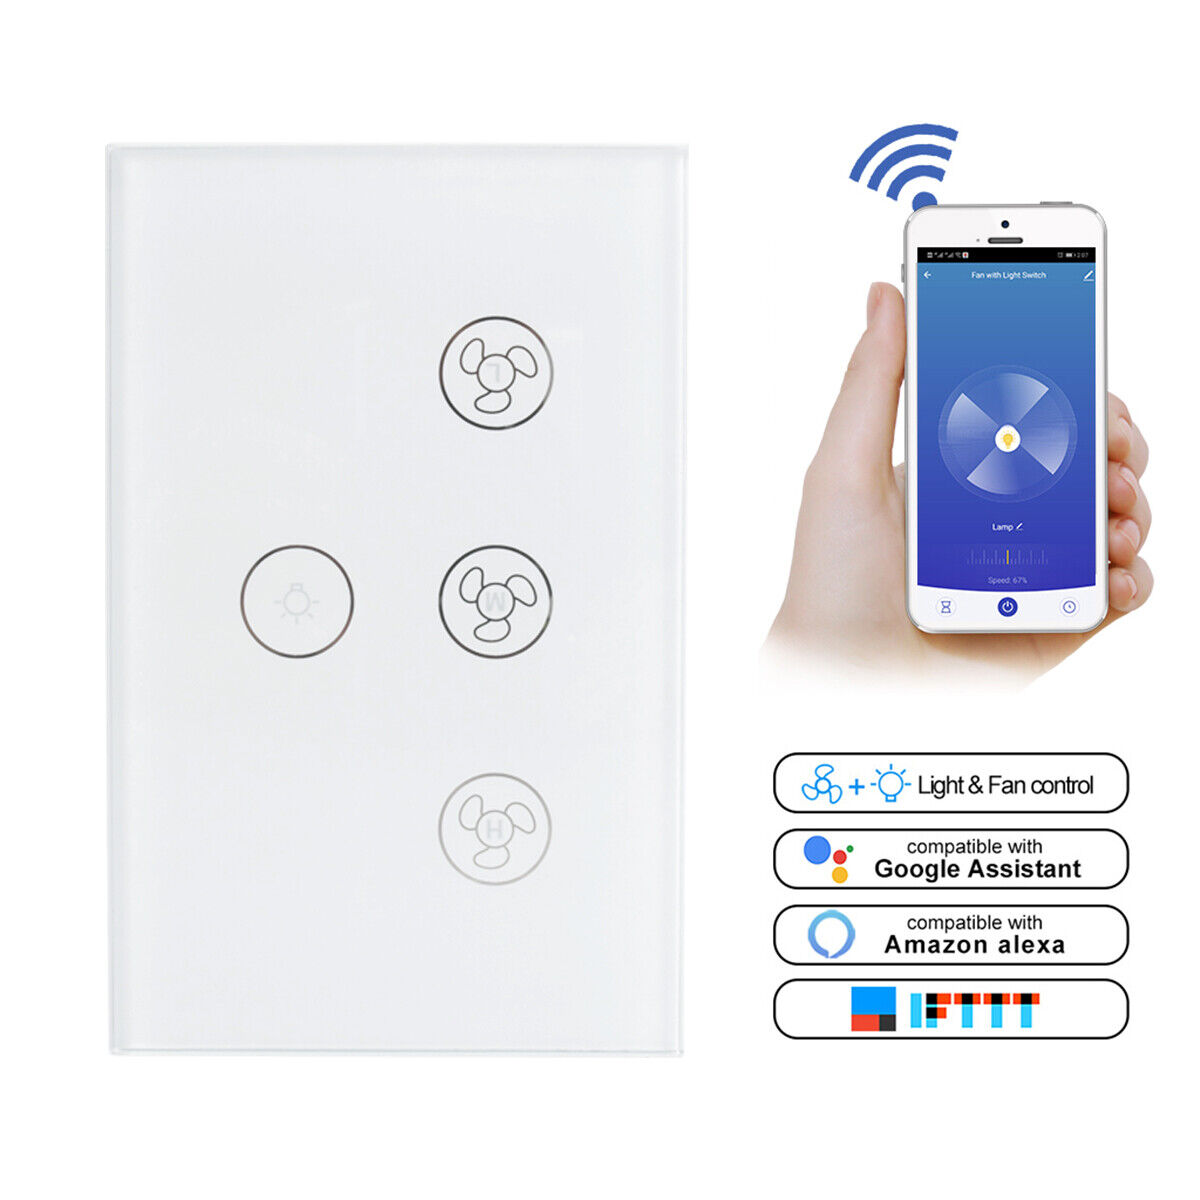 как выглядит Smart WiFi Ceiling Fan Light Lamp Switch In-Wall For Alexa Google Home Assistant фото